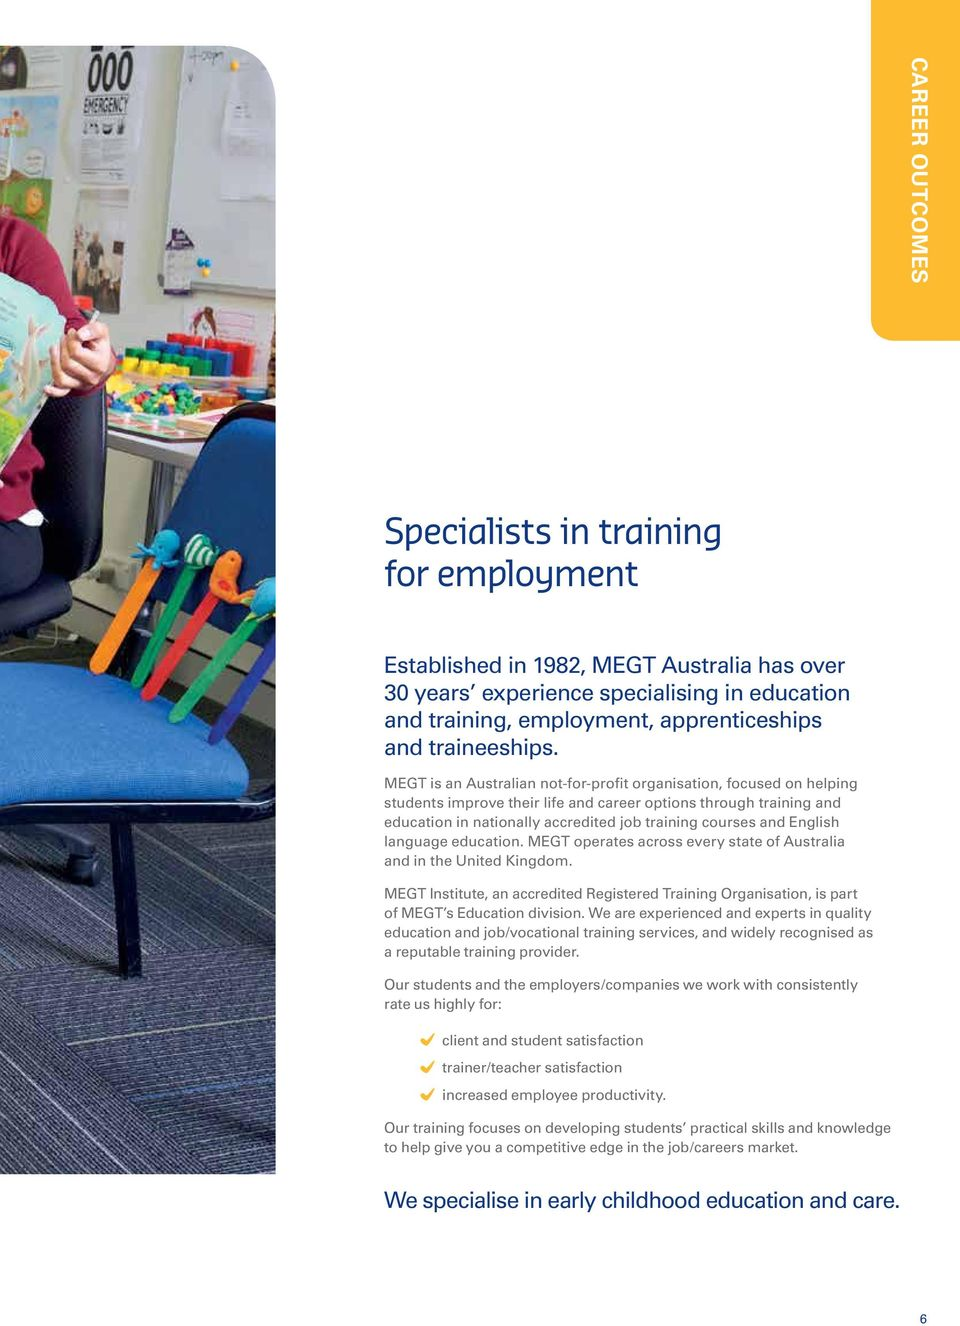 MEGT is an Australian not-for-profit organisation, focused on helping students improve their life and career options through training and education in nationally accredited job training courses and